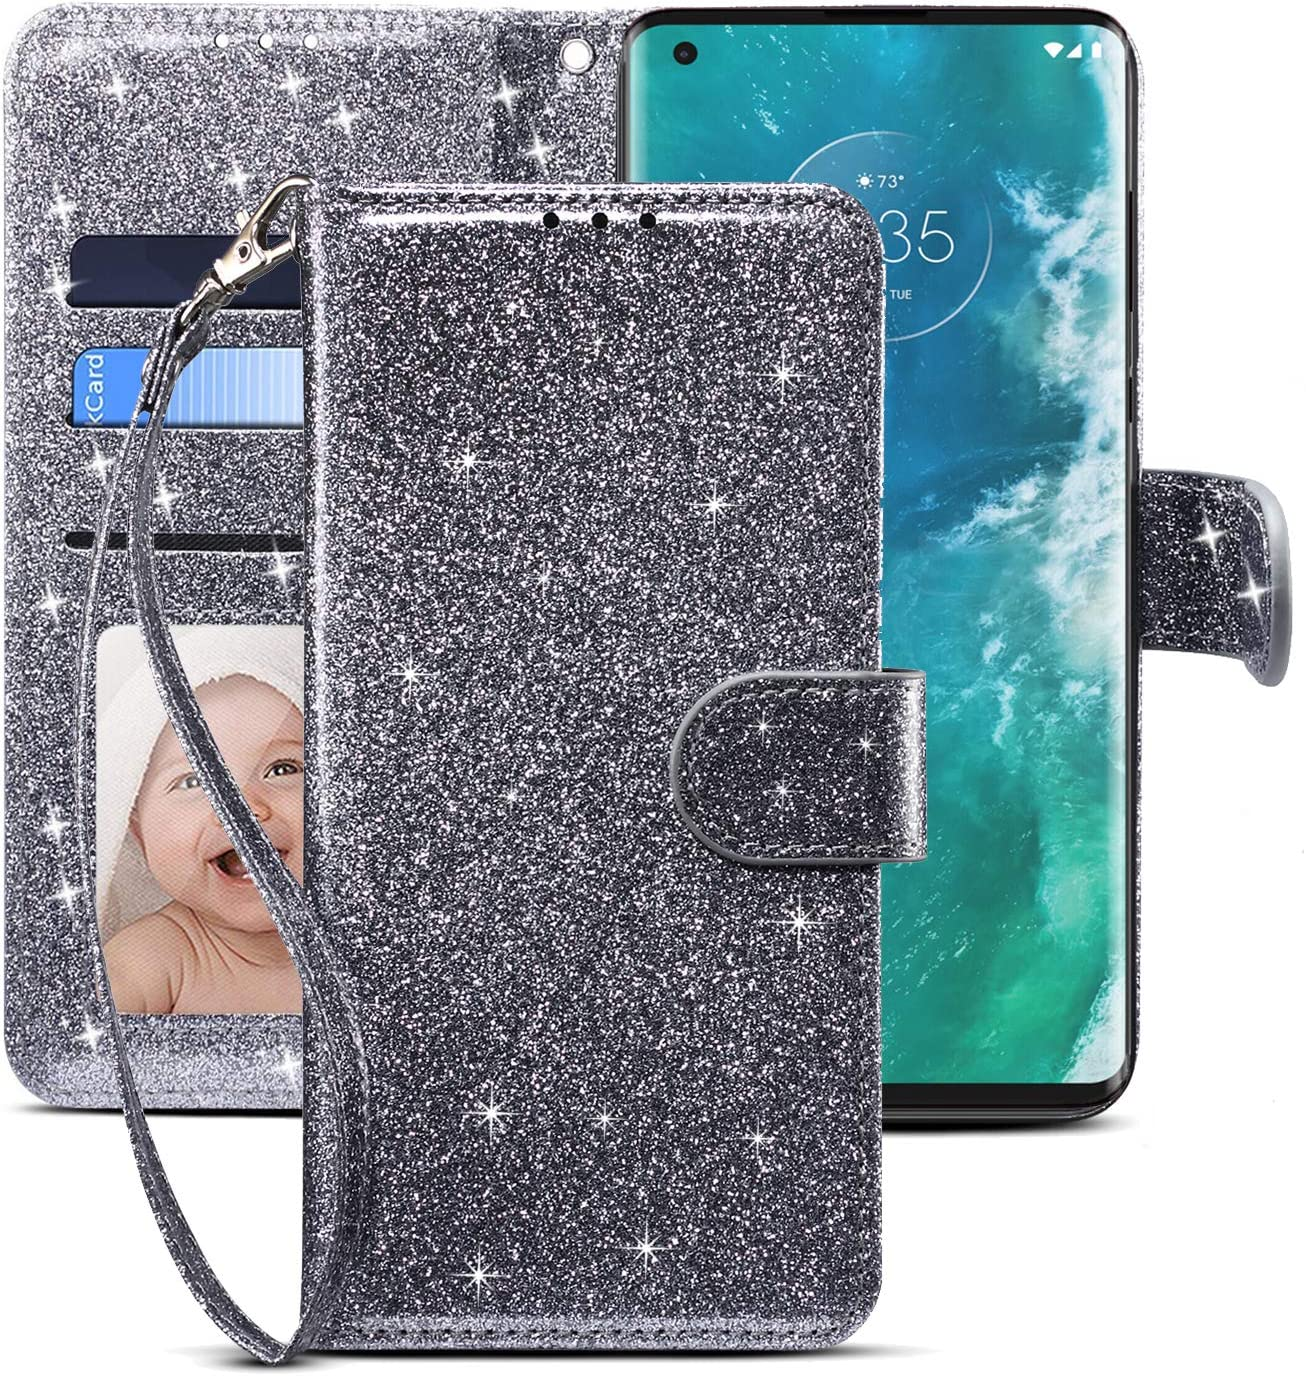 CHICASE Case for Moto Edge Plus/Edge+,Folding Flip Glitter Bling Cute Leather Wallet Shockproof Protective Phone Case with Kickstand Card Slots Wrist Strap for Motorola Moto Edge Plus (Gray)